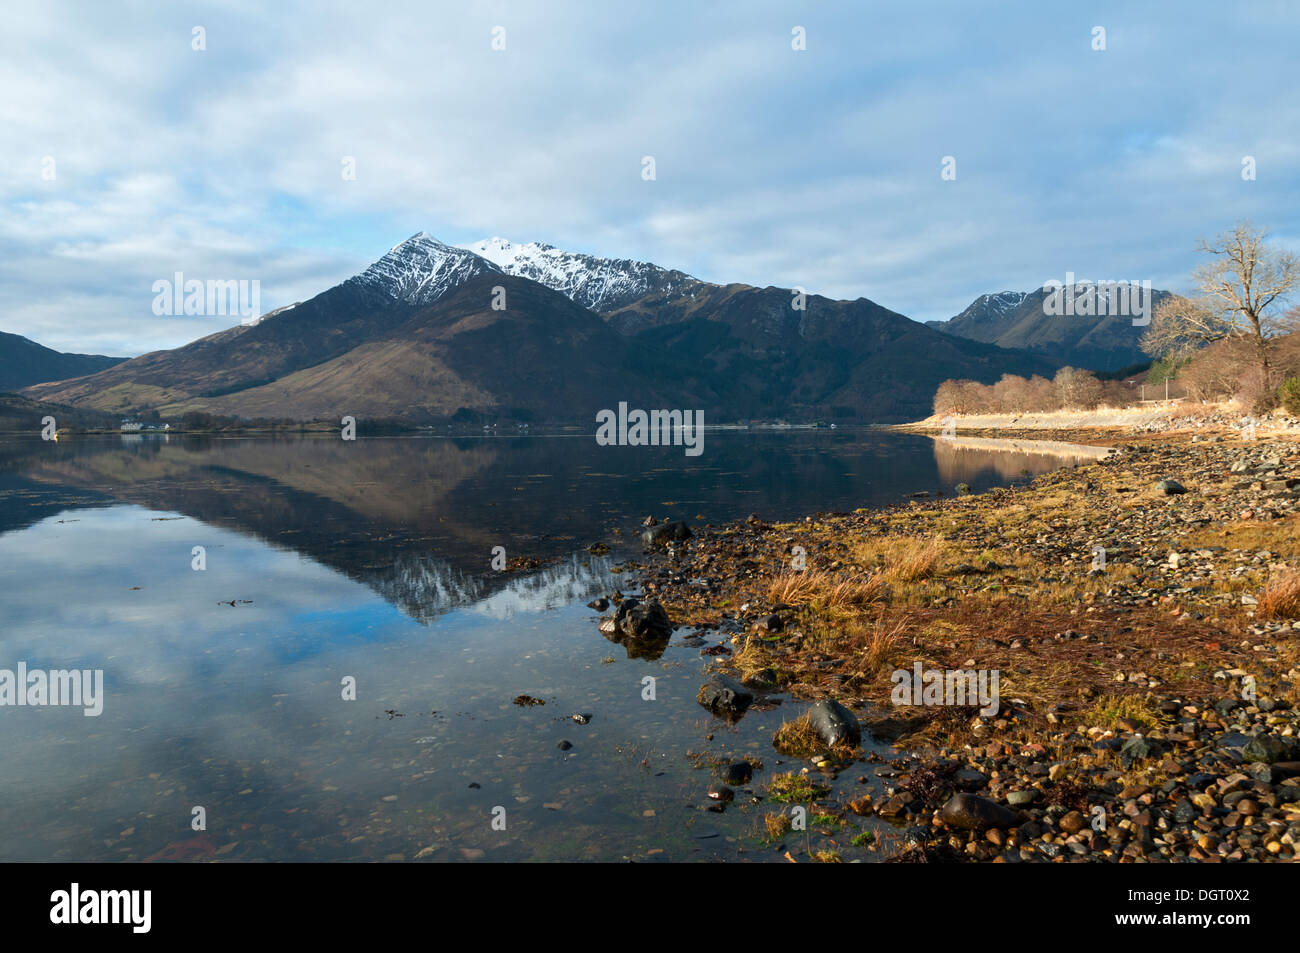 The Beinn a' Bheithir mountain group over Loch Leven, from near North Ballachulish, Highland region, Scotland, UK Stock Photo